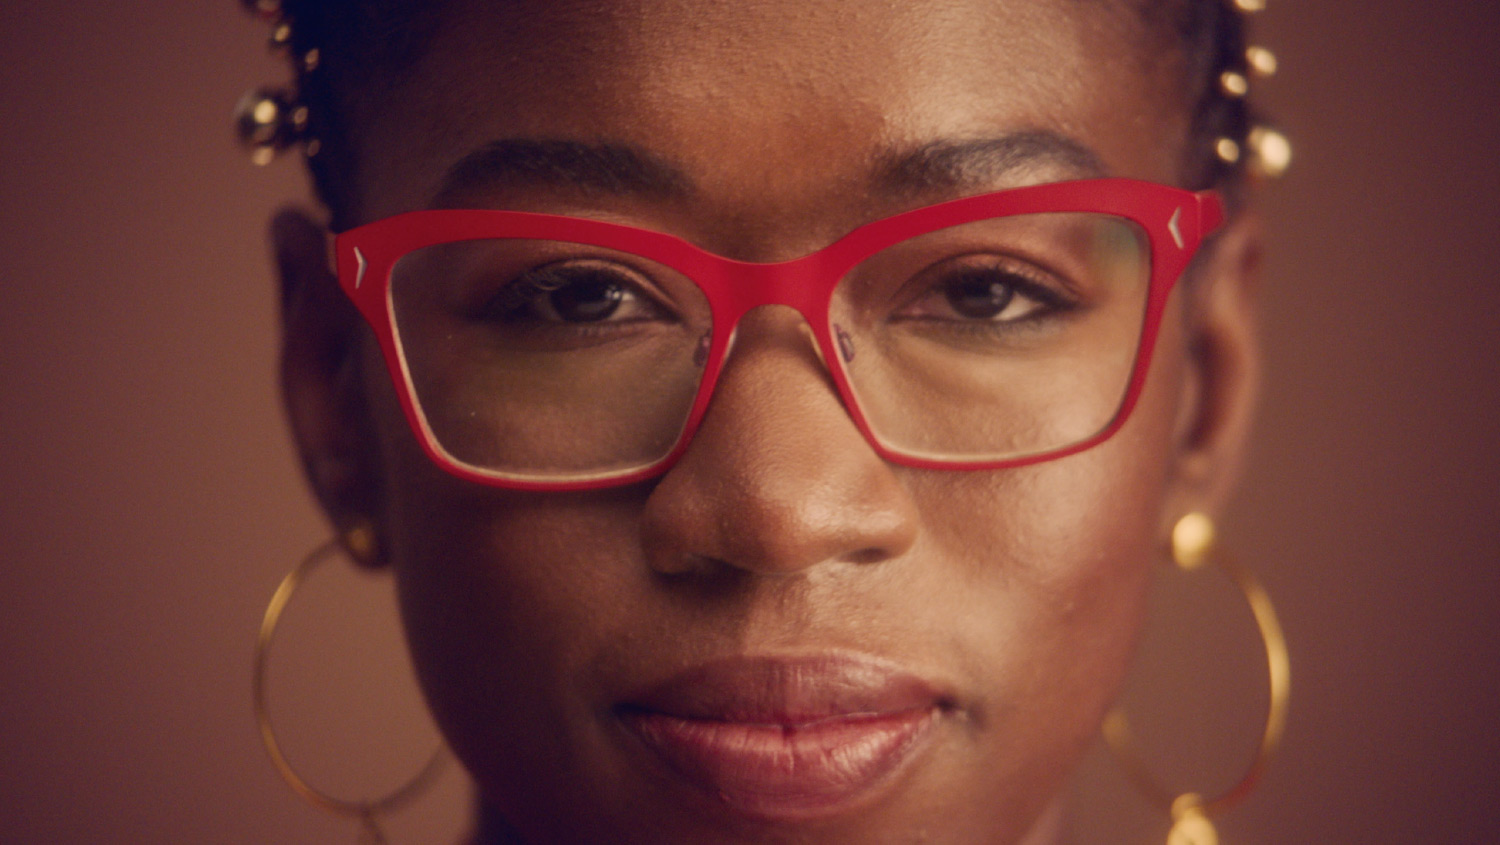 Joy Buolamwini staring straight on passionately. She is wearing red reading glasses with gold earrings.